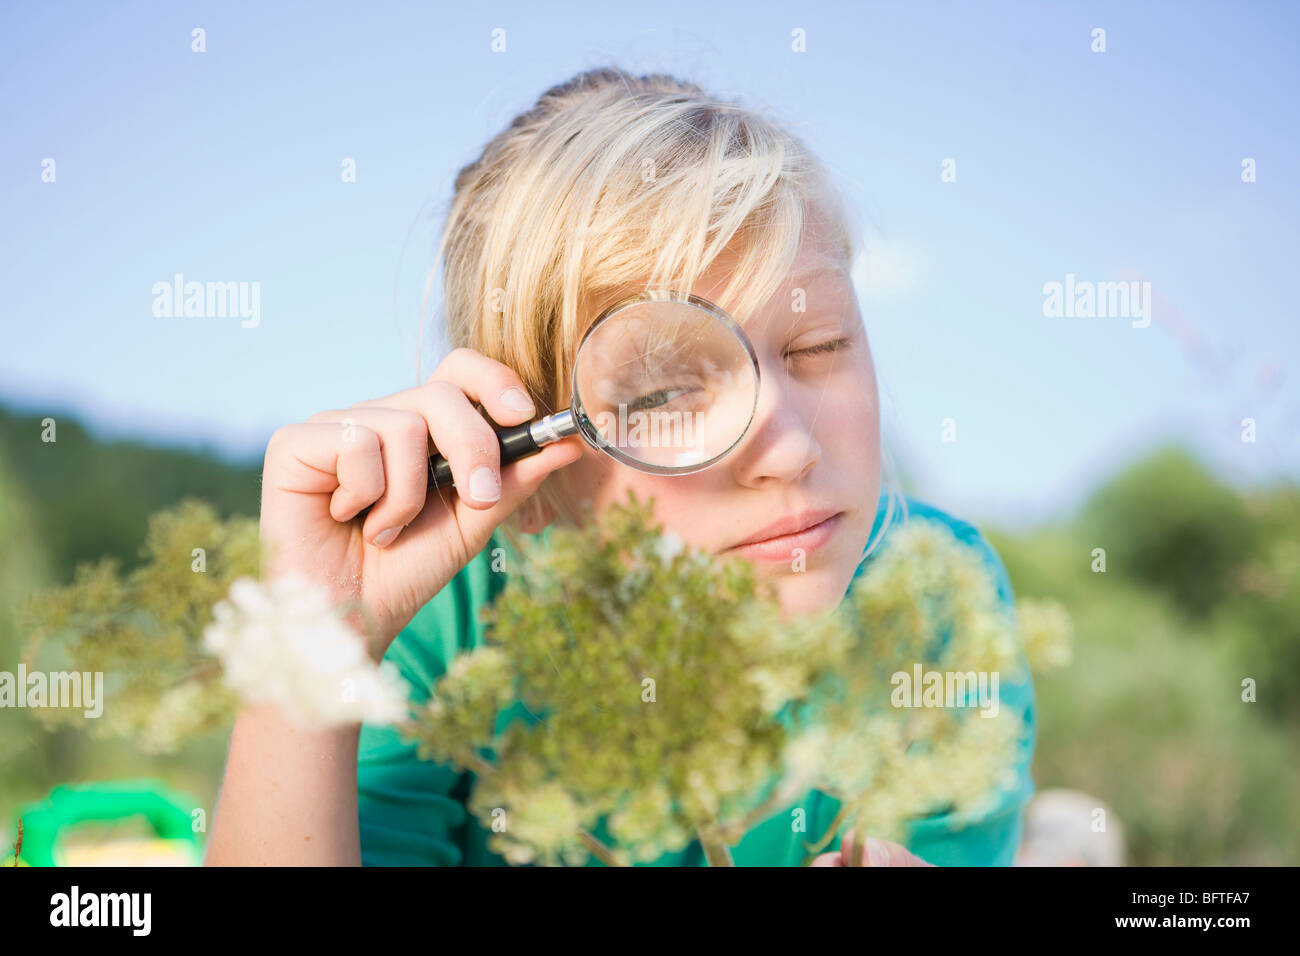 girl examines a flower - Stock Image